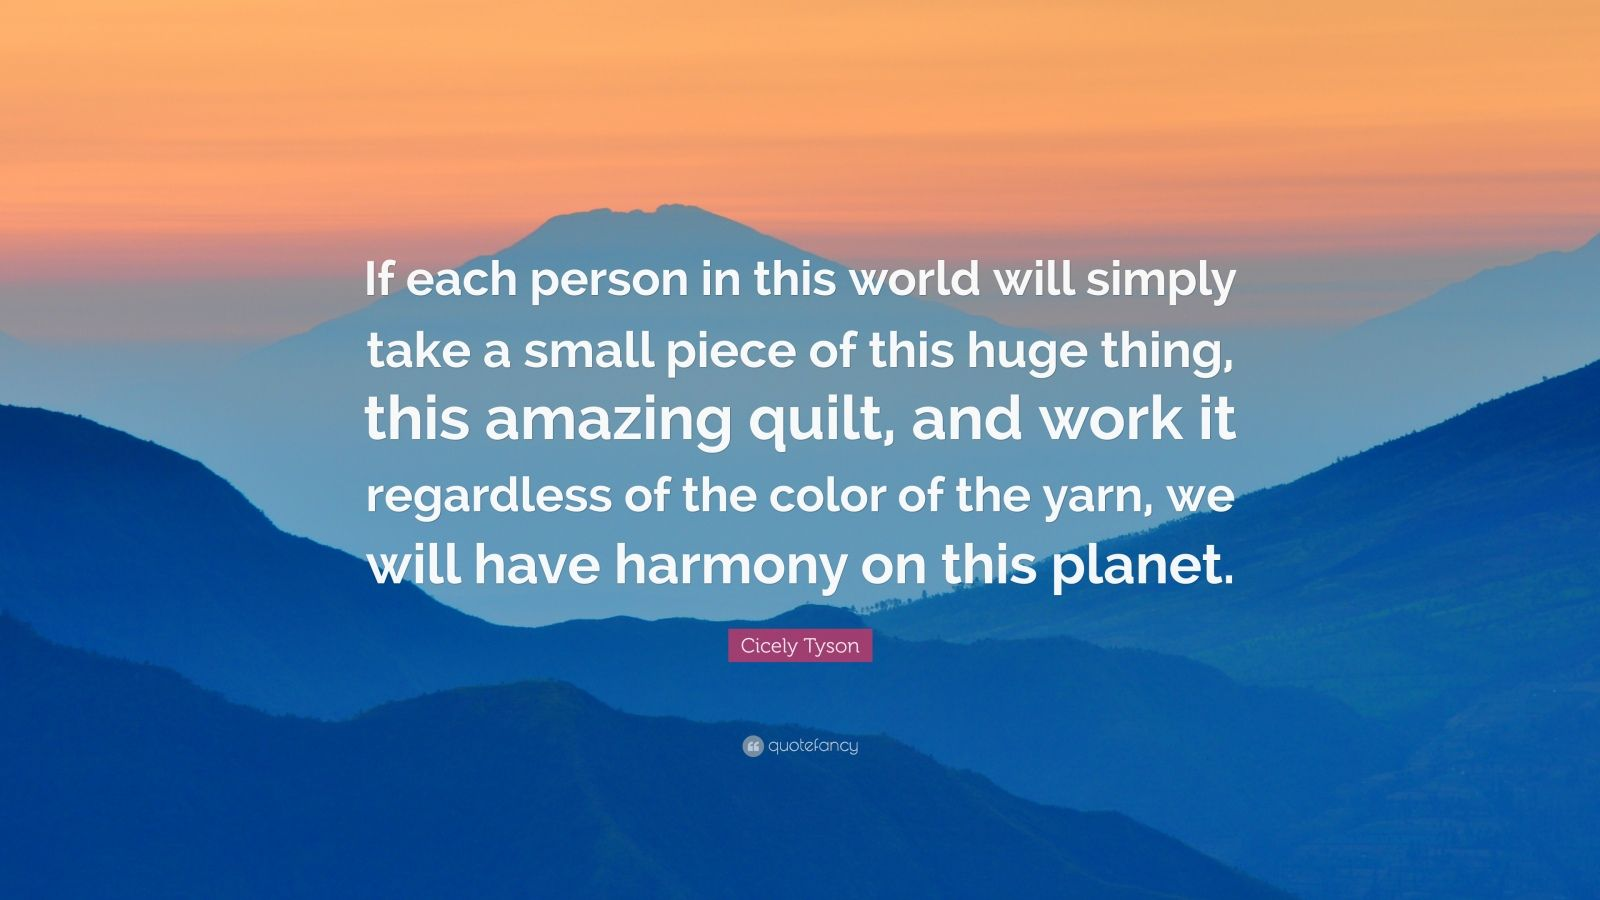 """Cicely Tyson Quote: """"If each person in this world will simply take a small piece of this huge thing, this amazing quilt, and work it regardless of the color of the yarn, we will have harmony on this planet."""""""